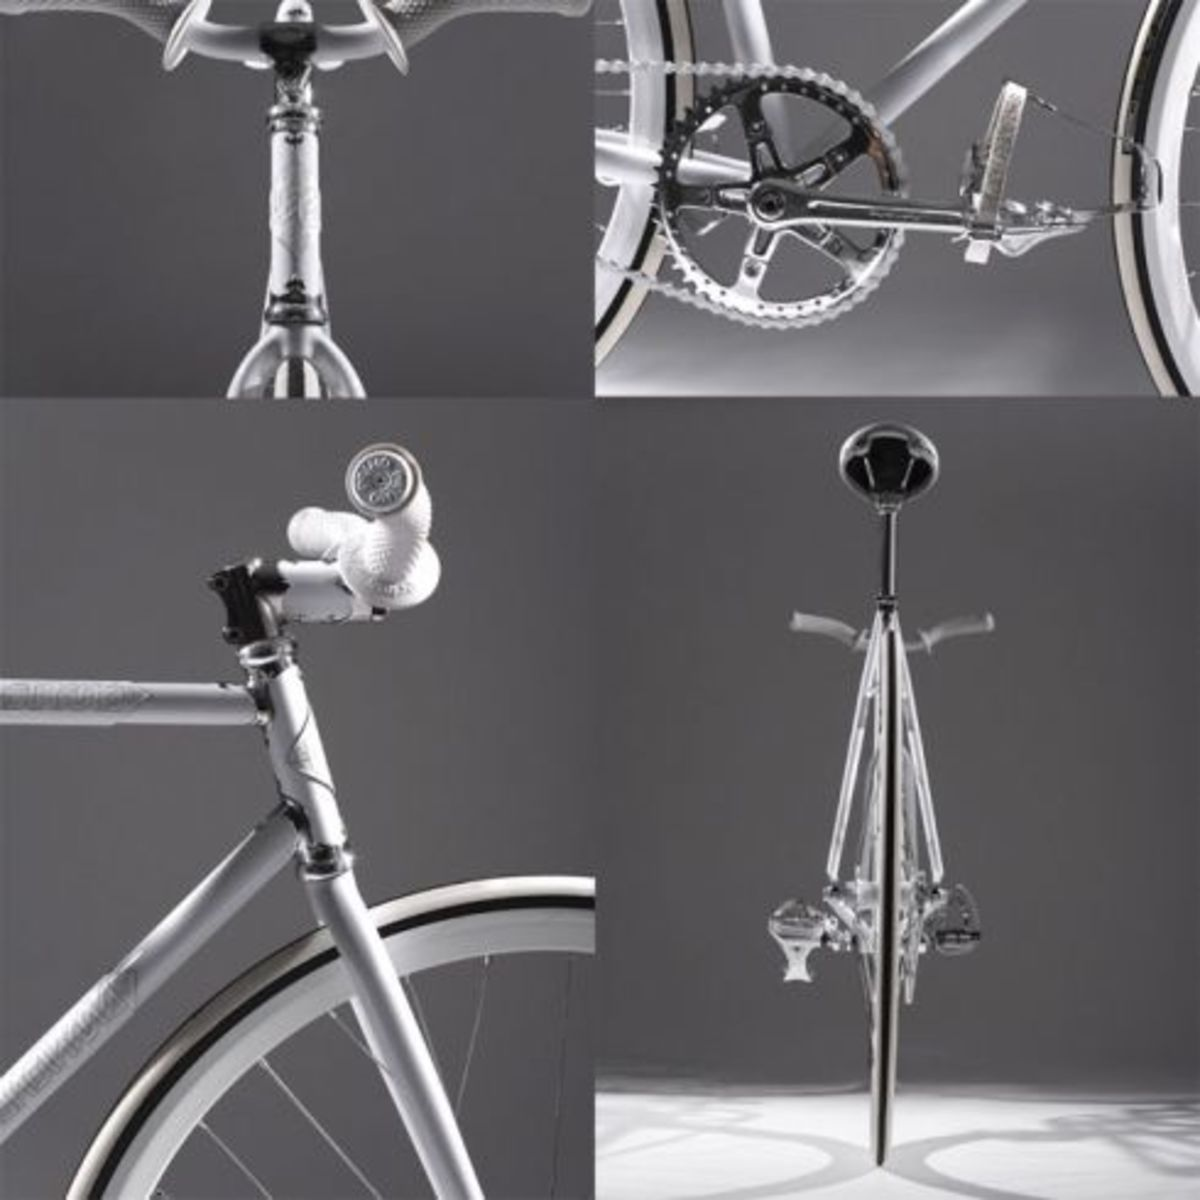 Nike Air Force 1 - Silver Service Fixie Bike - 1